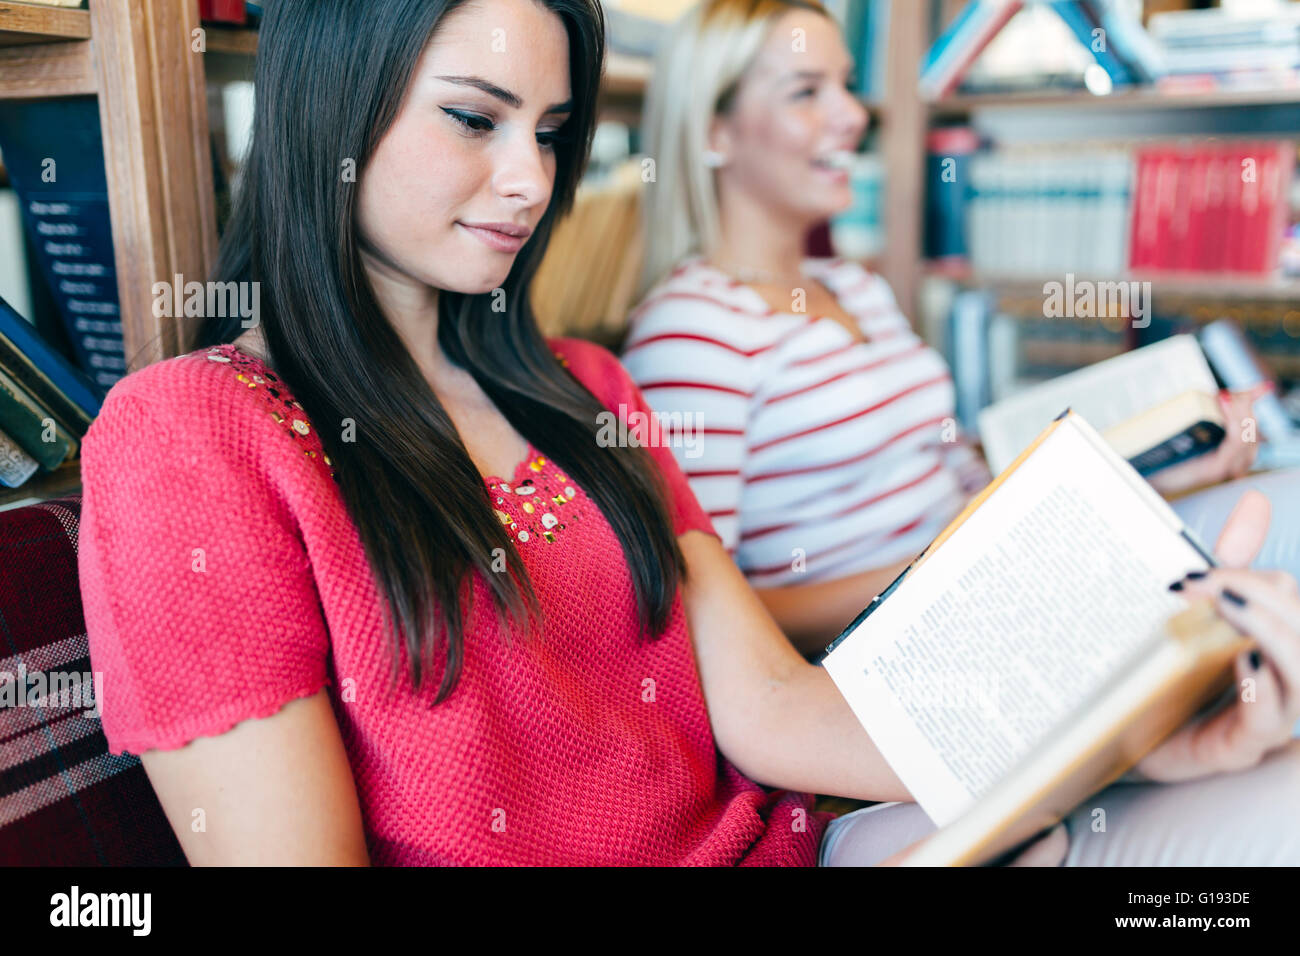 Friends reading books and studying for exam together - Stock Image